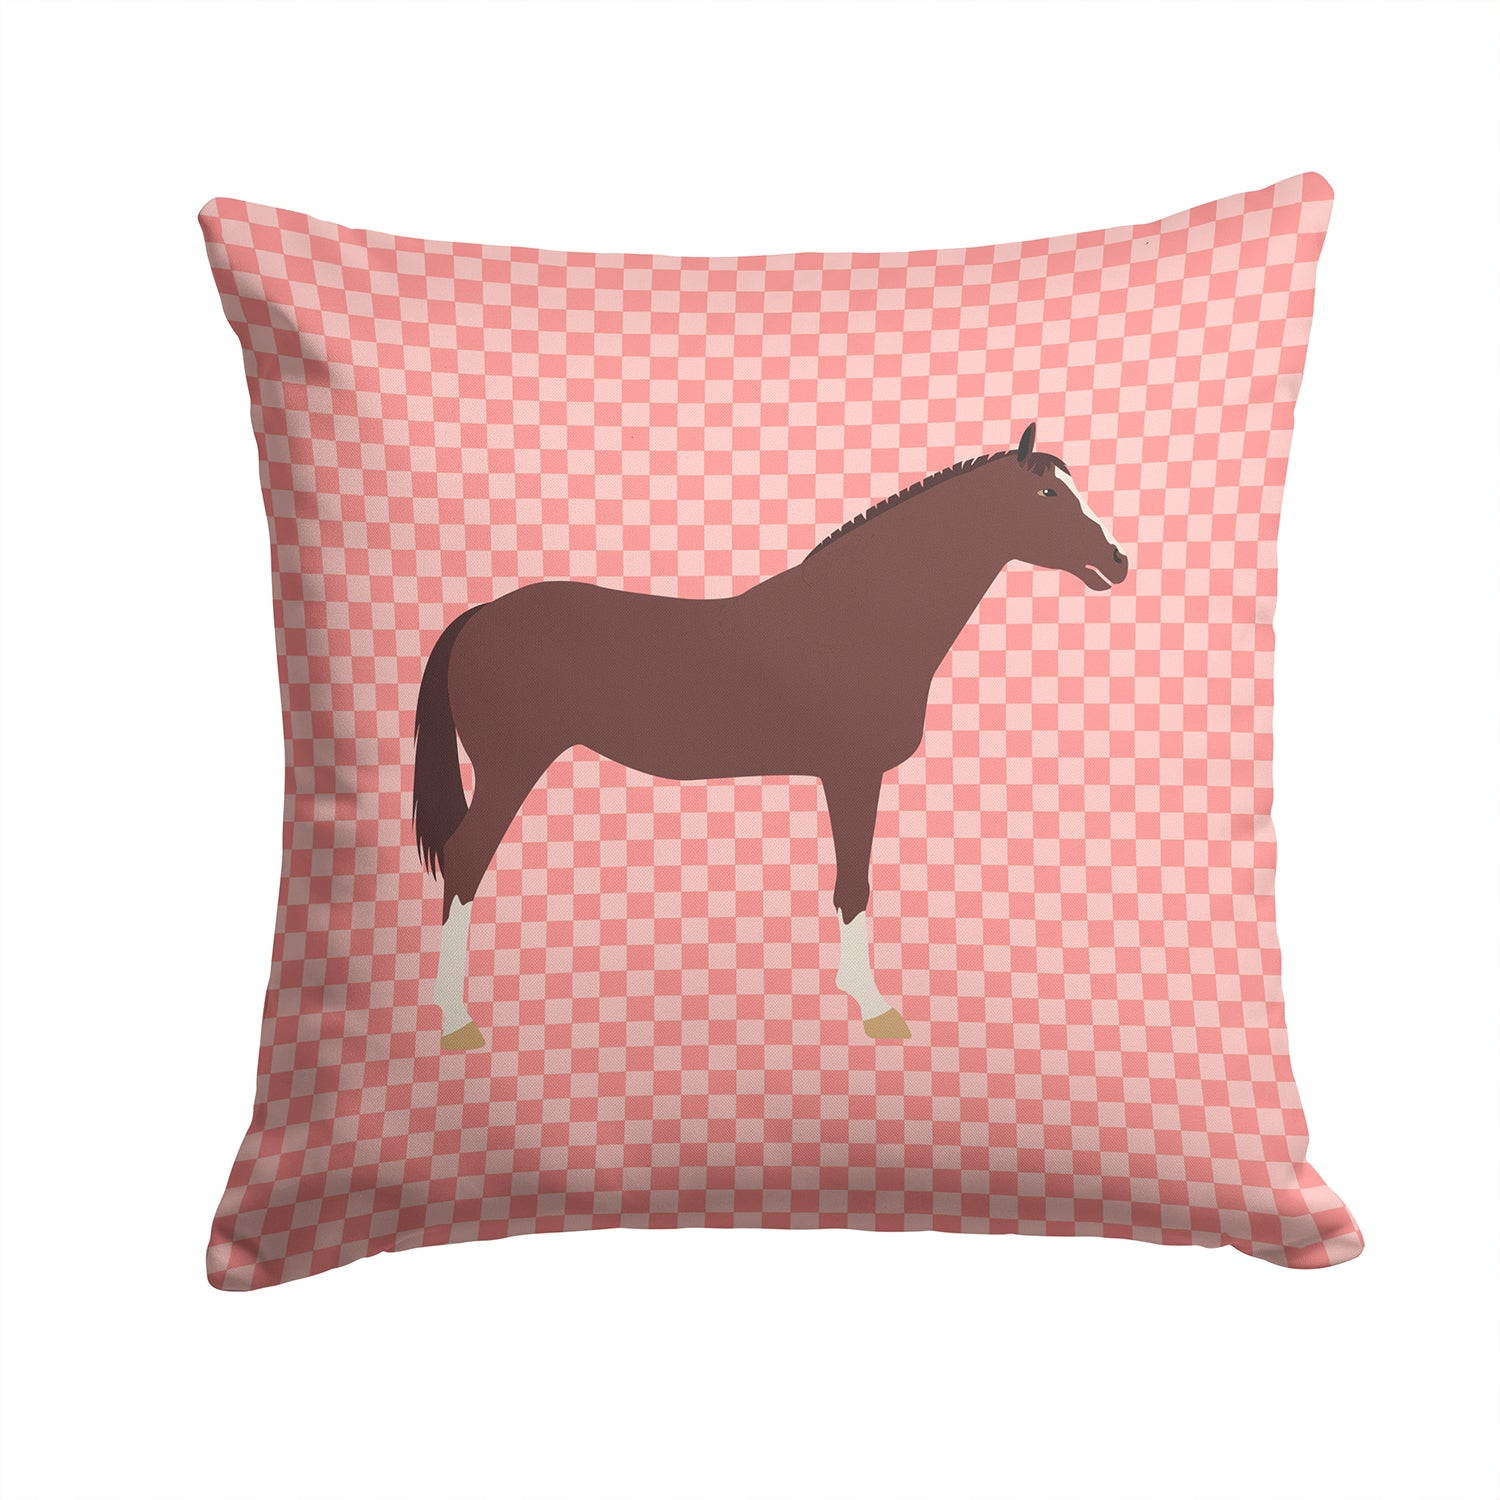 English Thoroughbred Horse Pink Check Fabric Decorative Pillow BB7913PW1414 by Caroline's Treasures